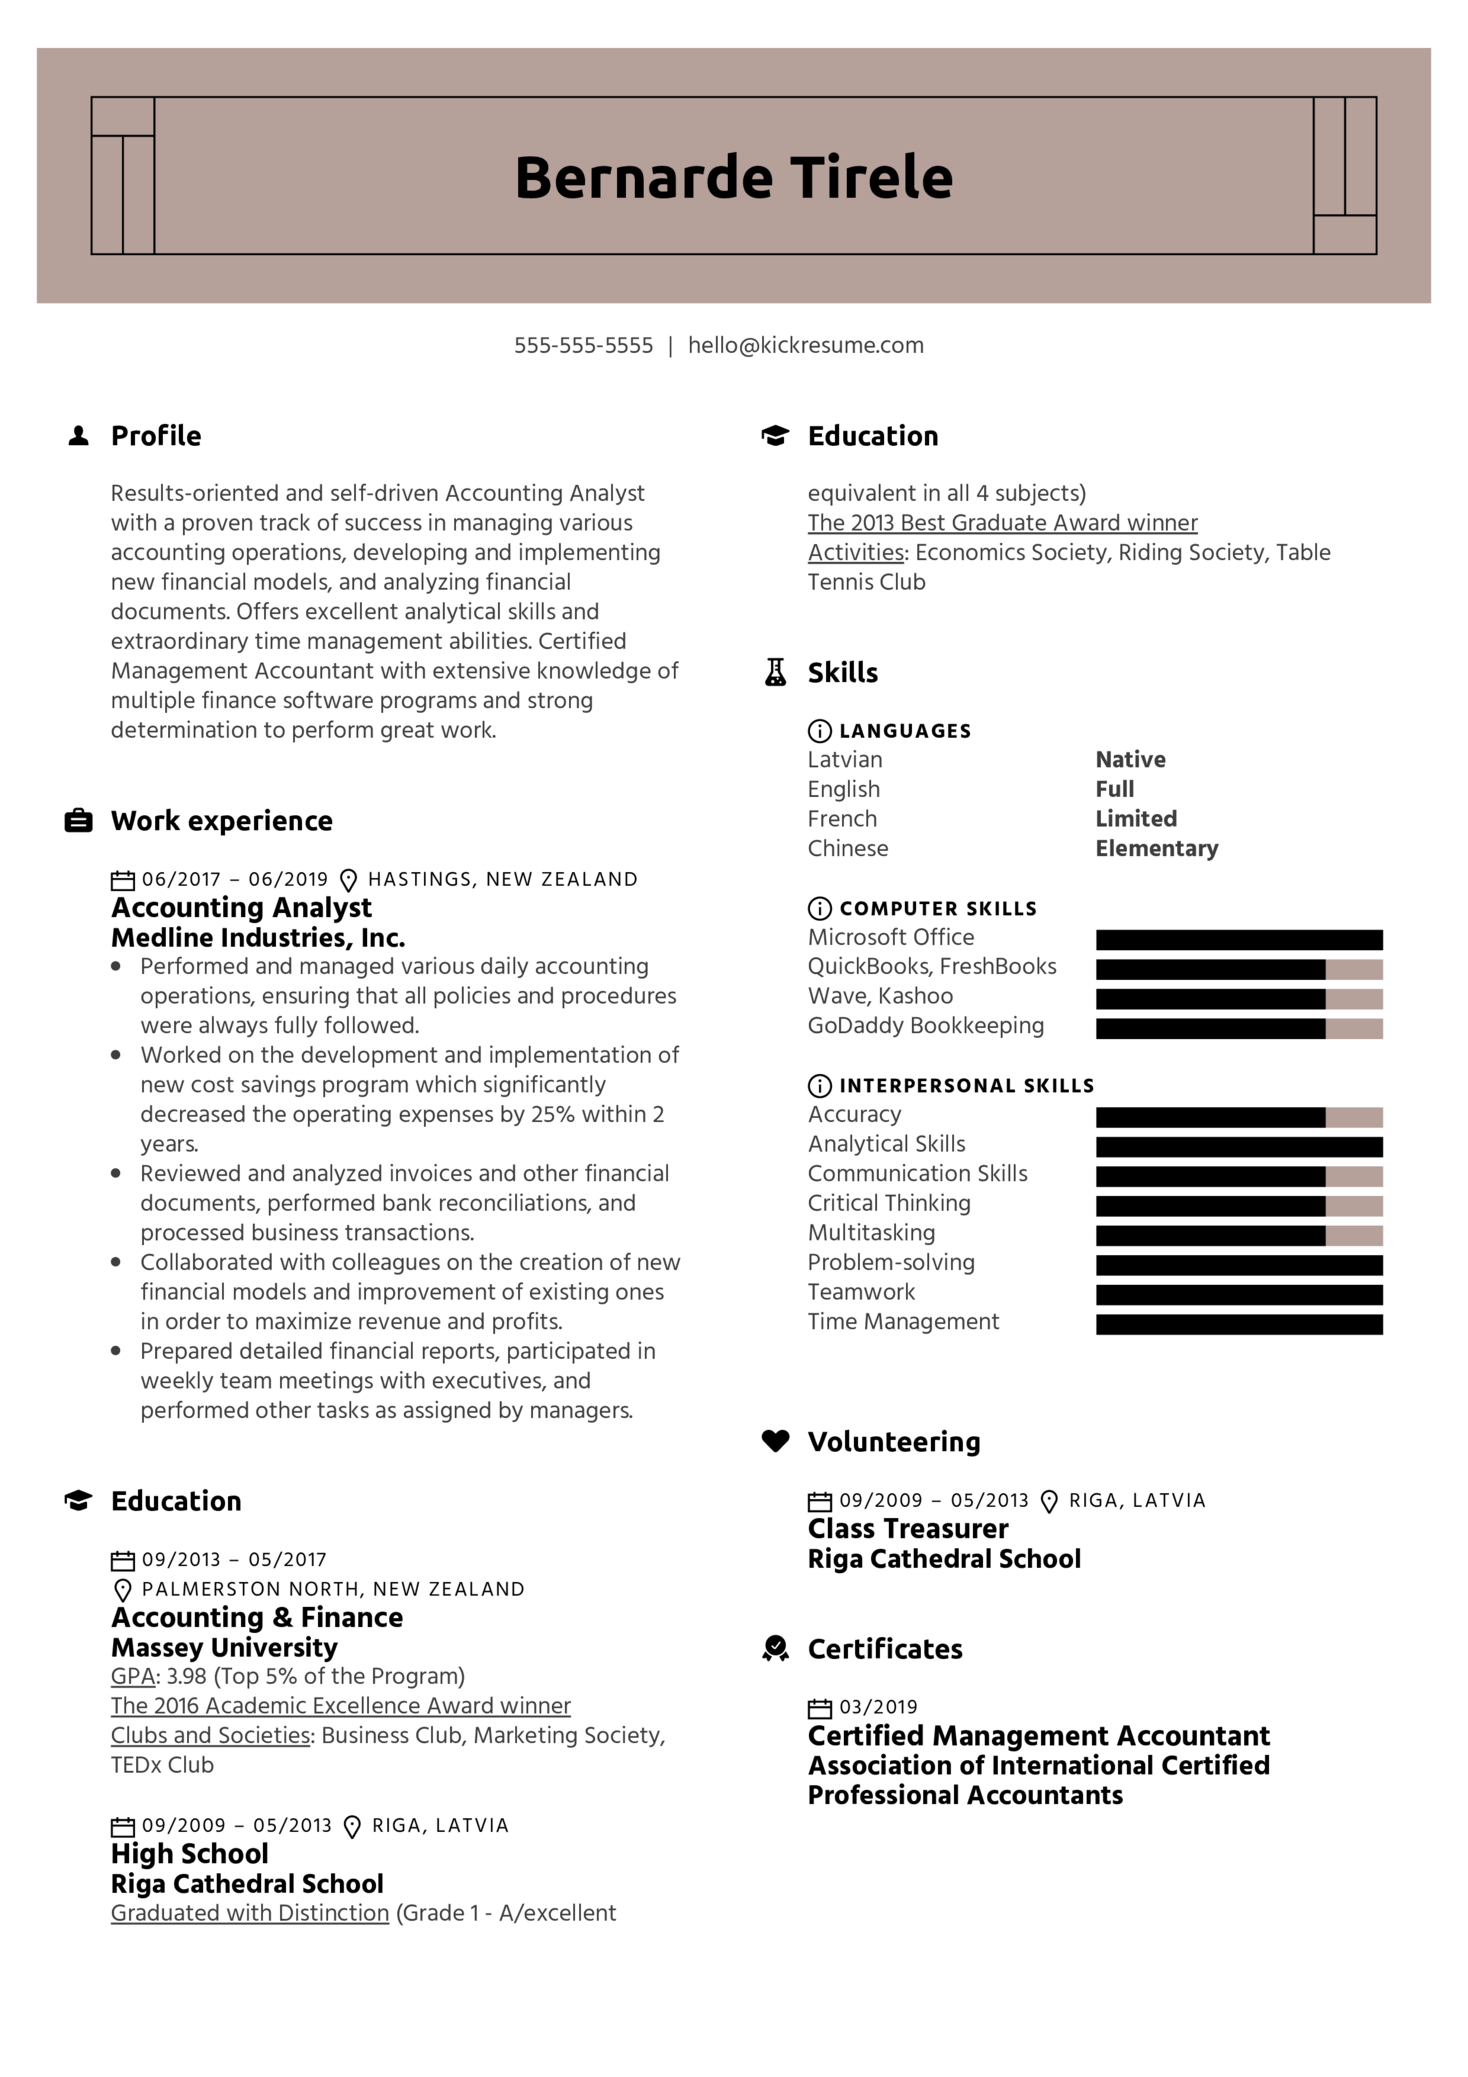 Accounting Analyst Resume Sample (Part 1)